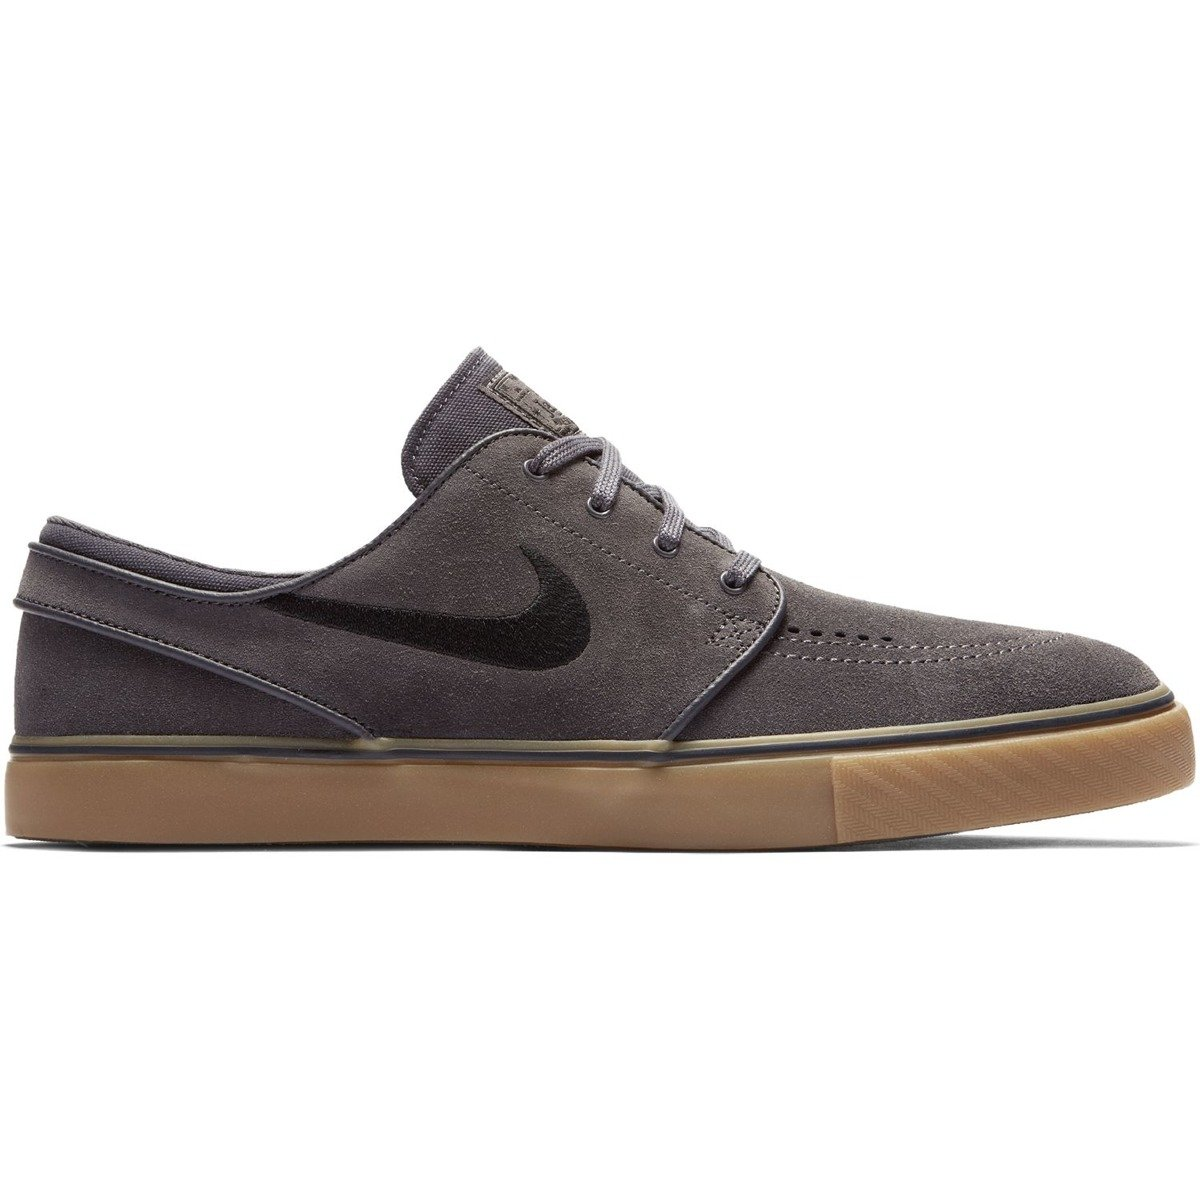 79f5acb74f69 333824-069. nike sb zoom stefan janoski thunder grey black-gum light brown  Click to zoom ...